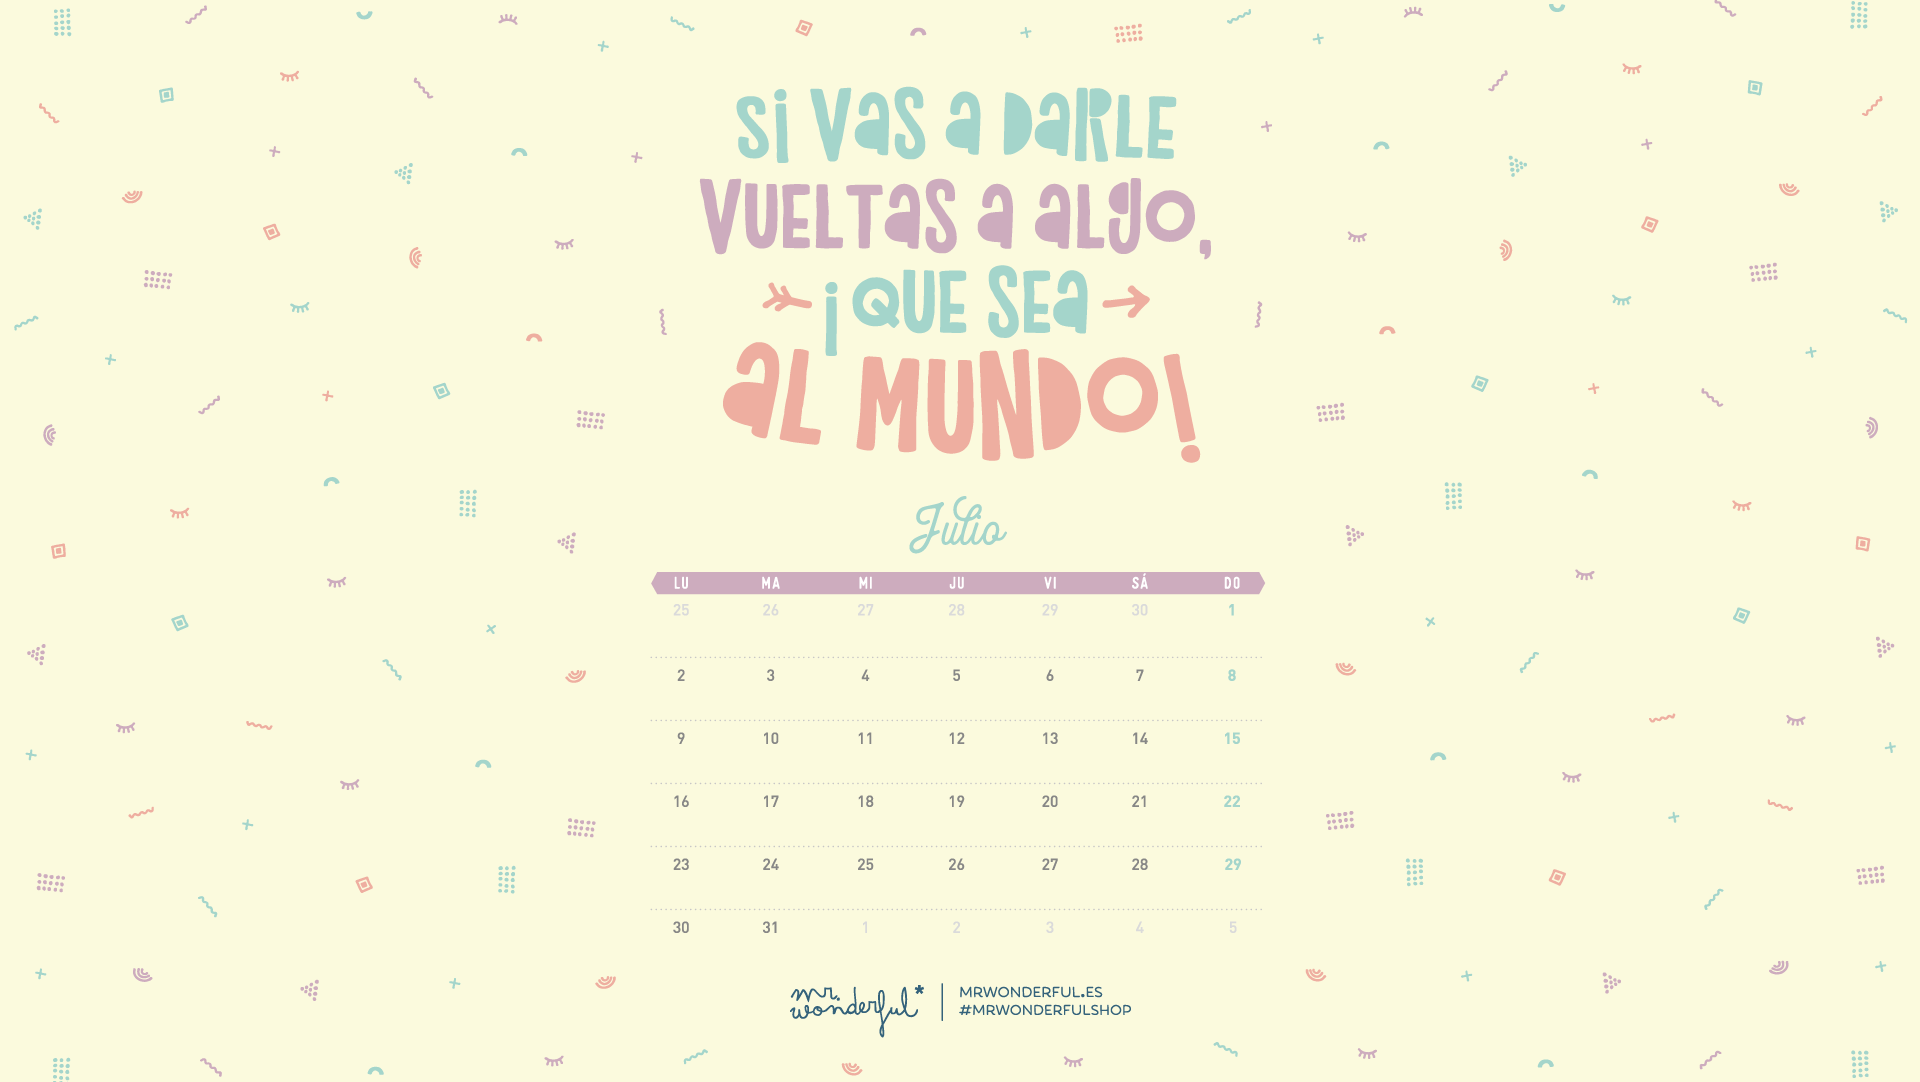 Calendario Julio 2019 Mr Wonderful.Fondos De Pantalla Descargables Mr Wonderful 2018 Onlyness